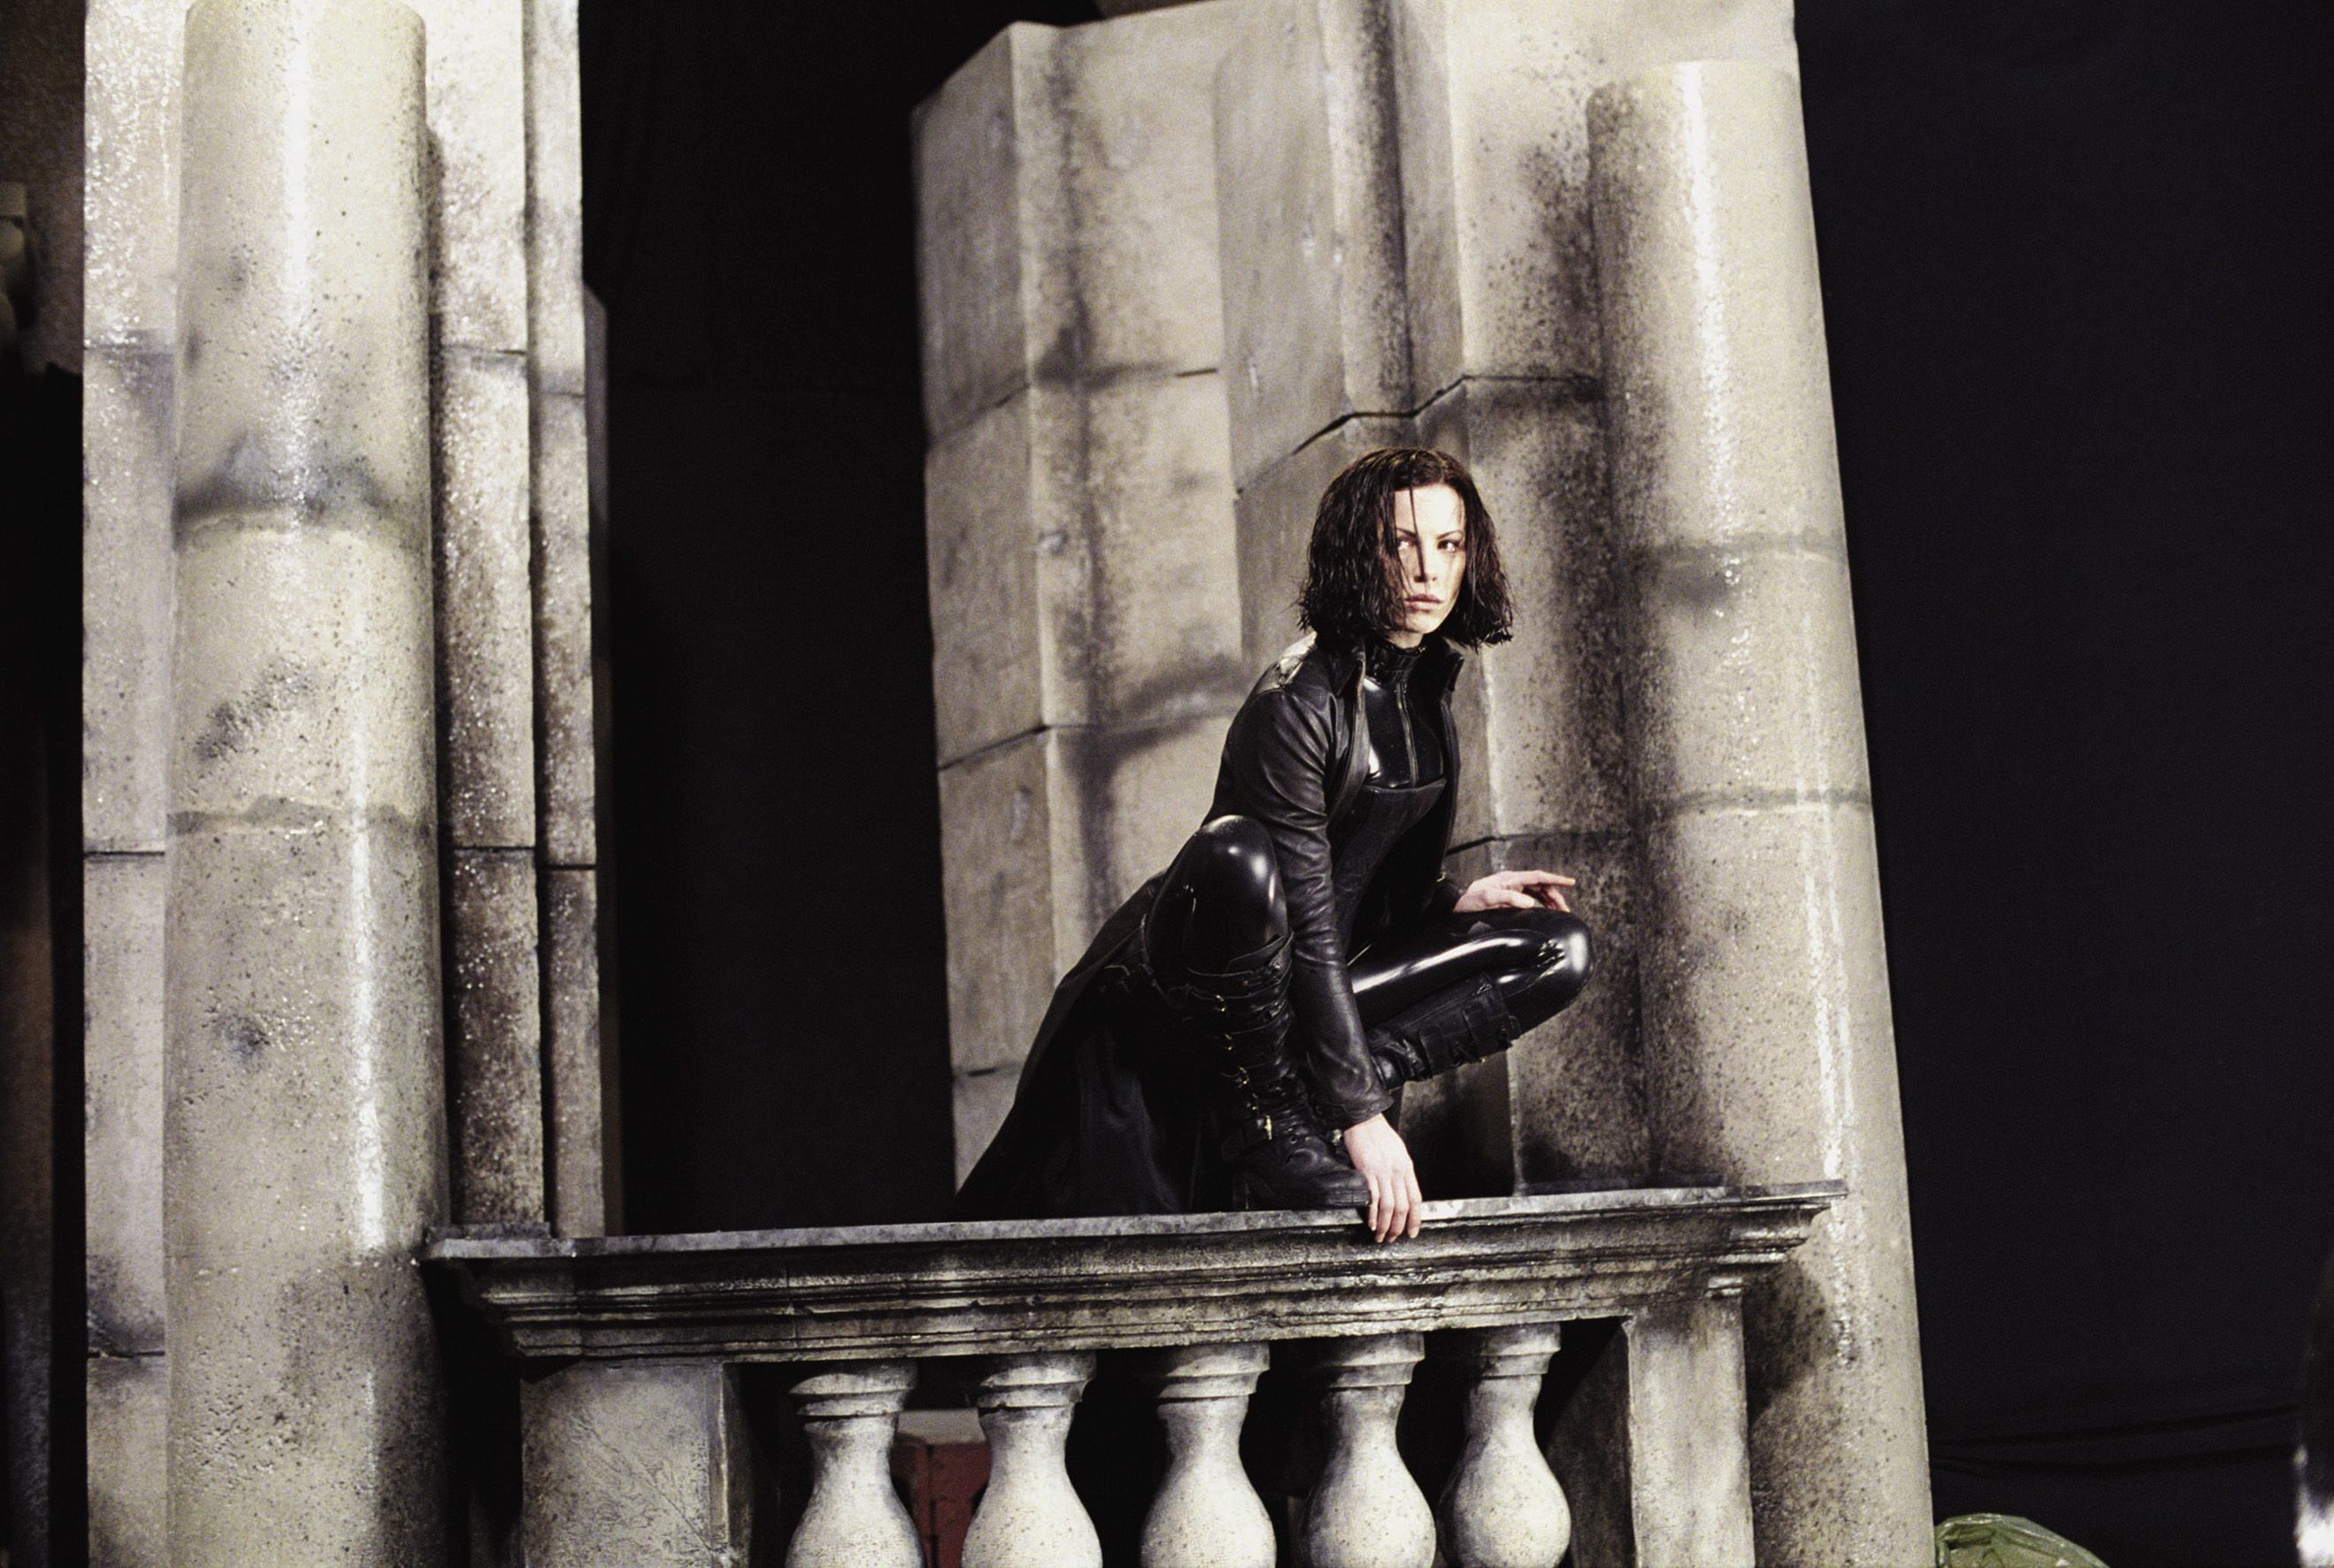 Underworld 2003 Kate Beckinsale Selene balcon